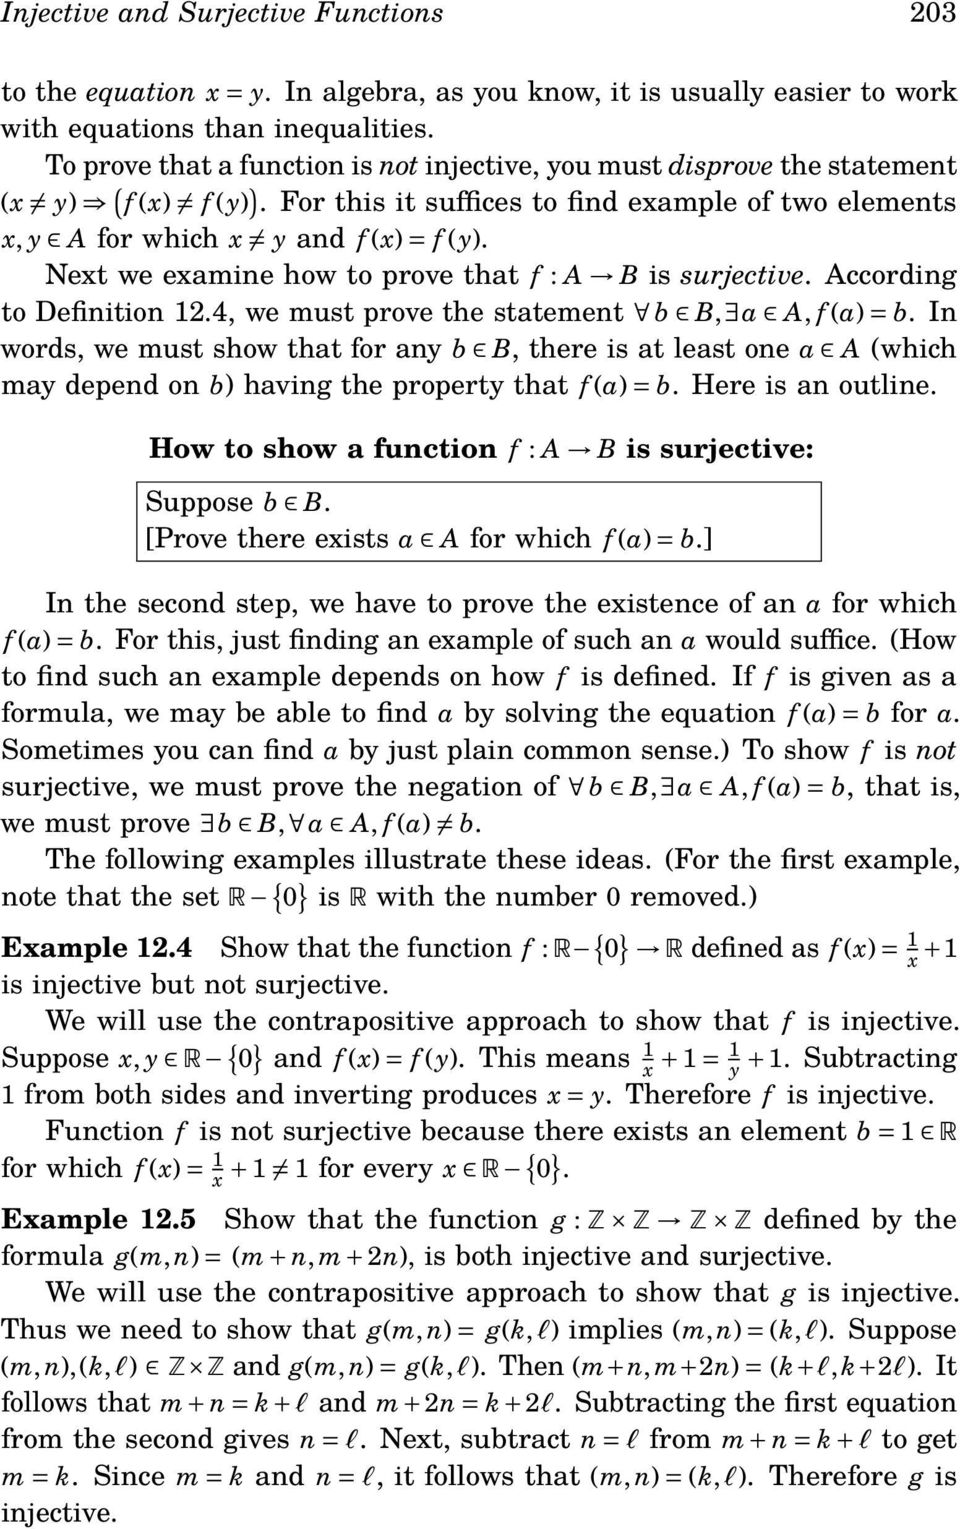 Next we examine how to prove that f : is surjective. ccording to Definition 12.4, we must prove the statement b, a, f (a) = b.